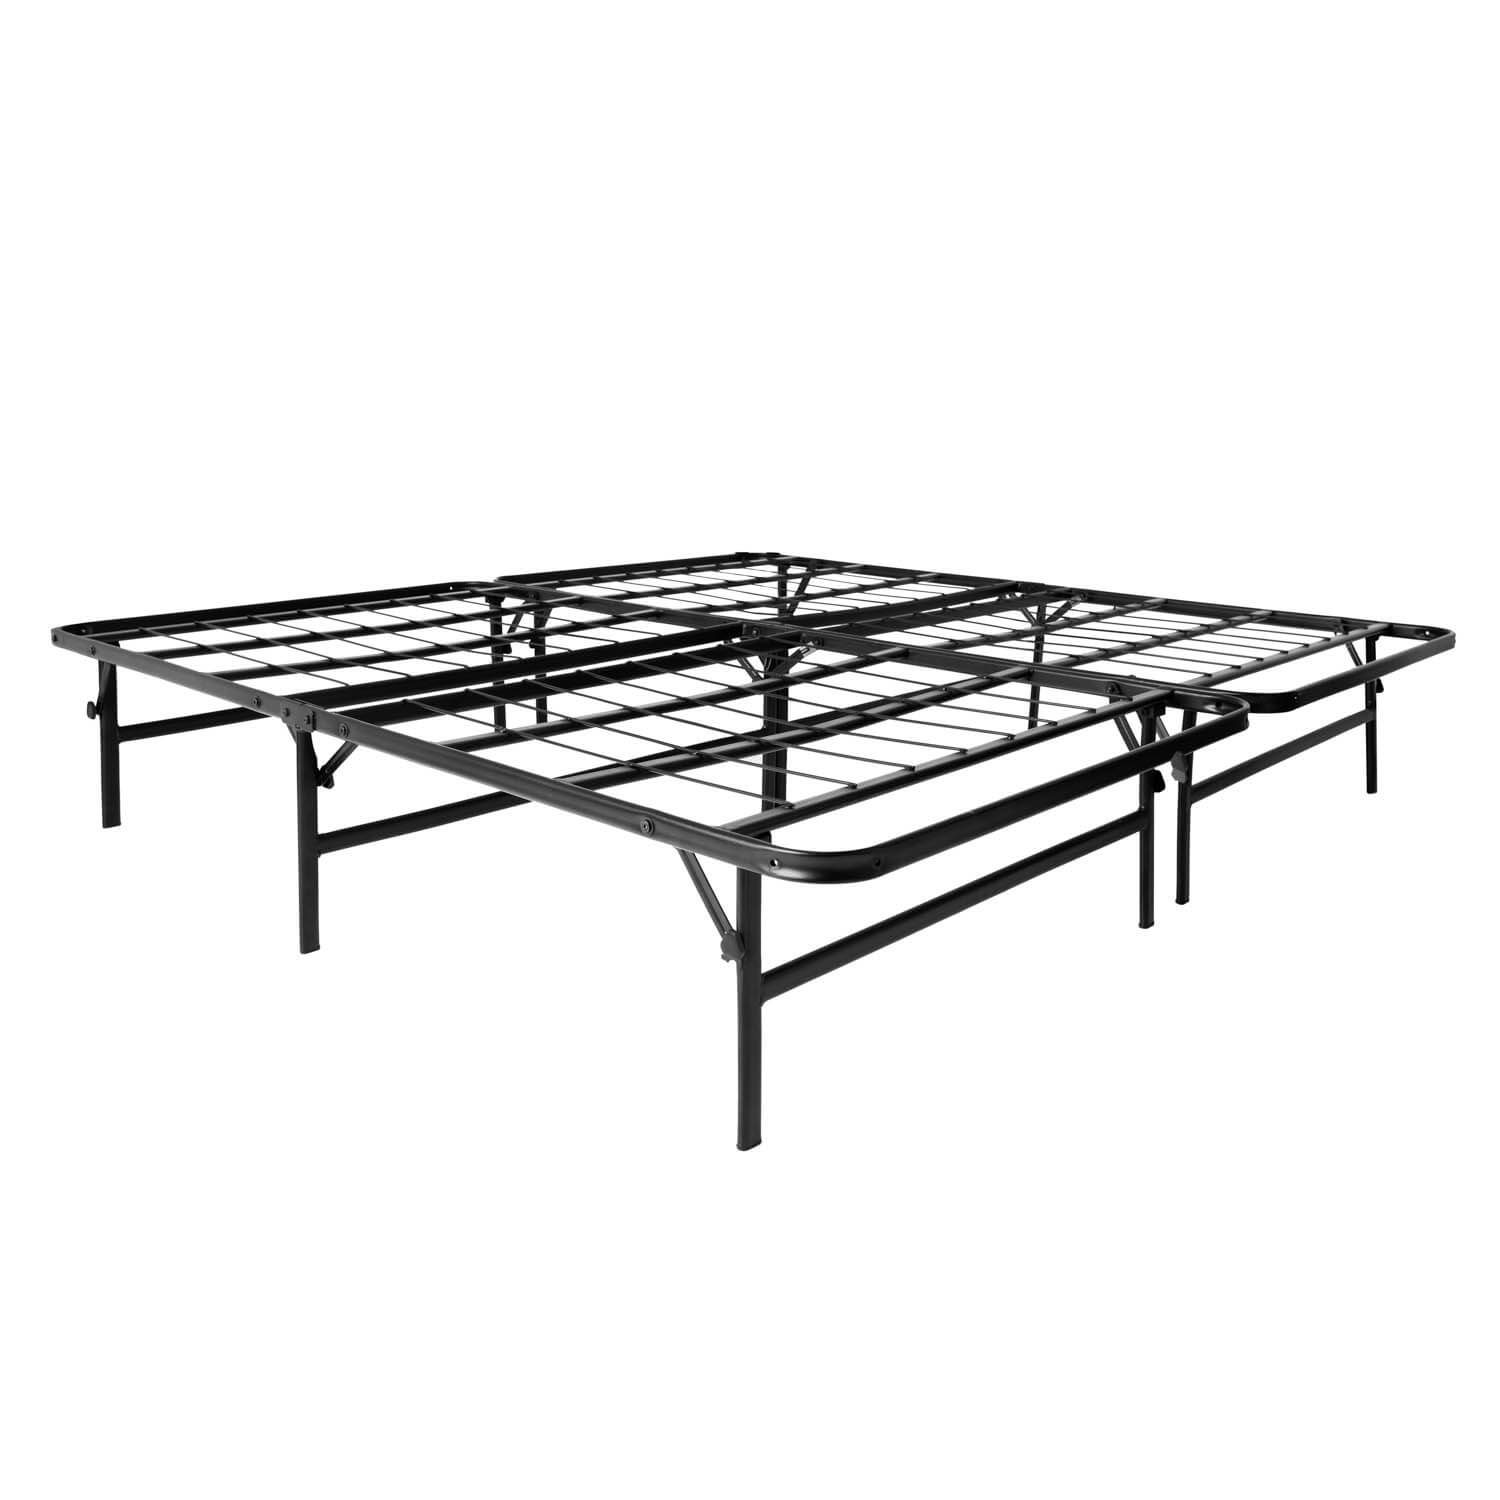 Malouf High Rise Bed Frame